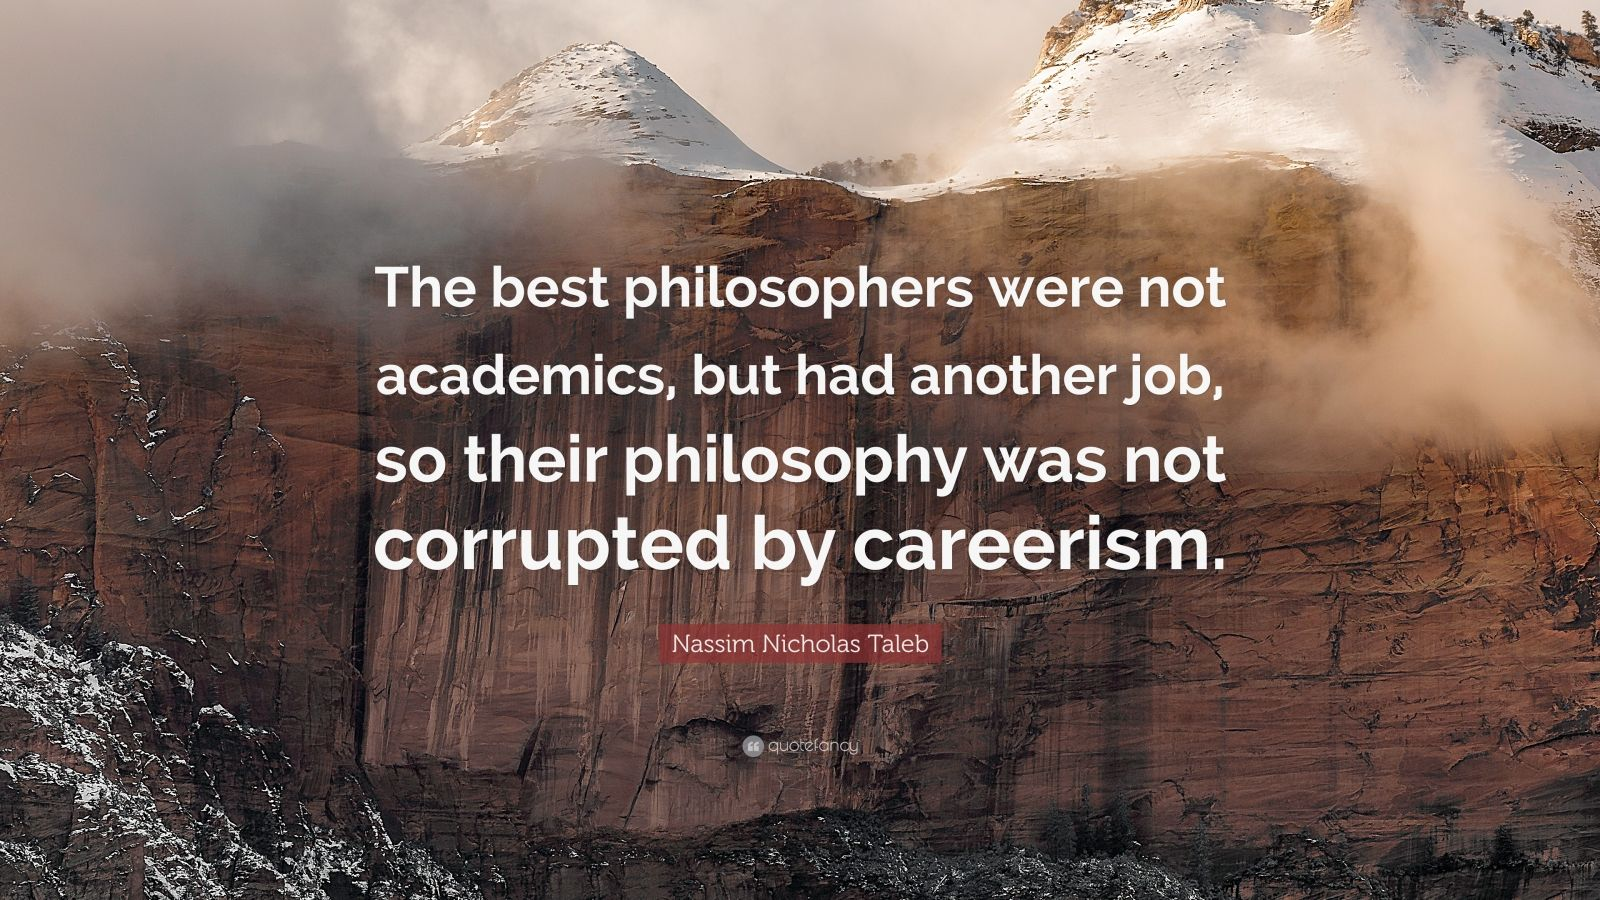 """Nassim Nicholas Taleb Quote: """"The best philosophers were not academics, but had another job, so their philosophy was not corrupted by careerism."""""""